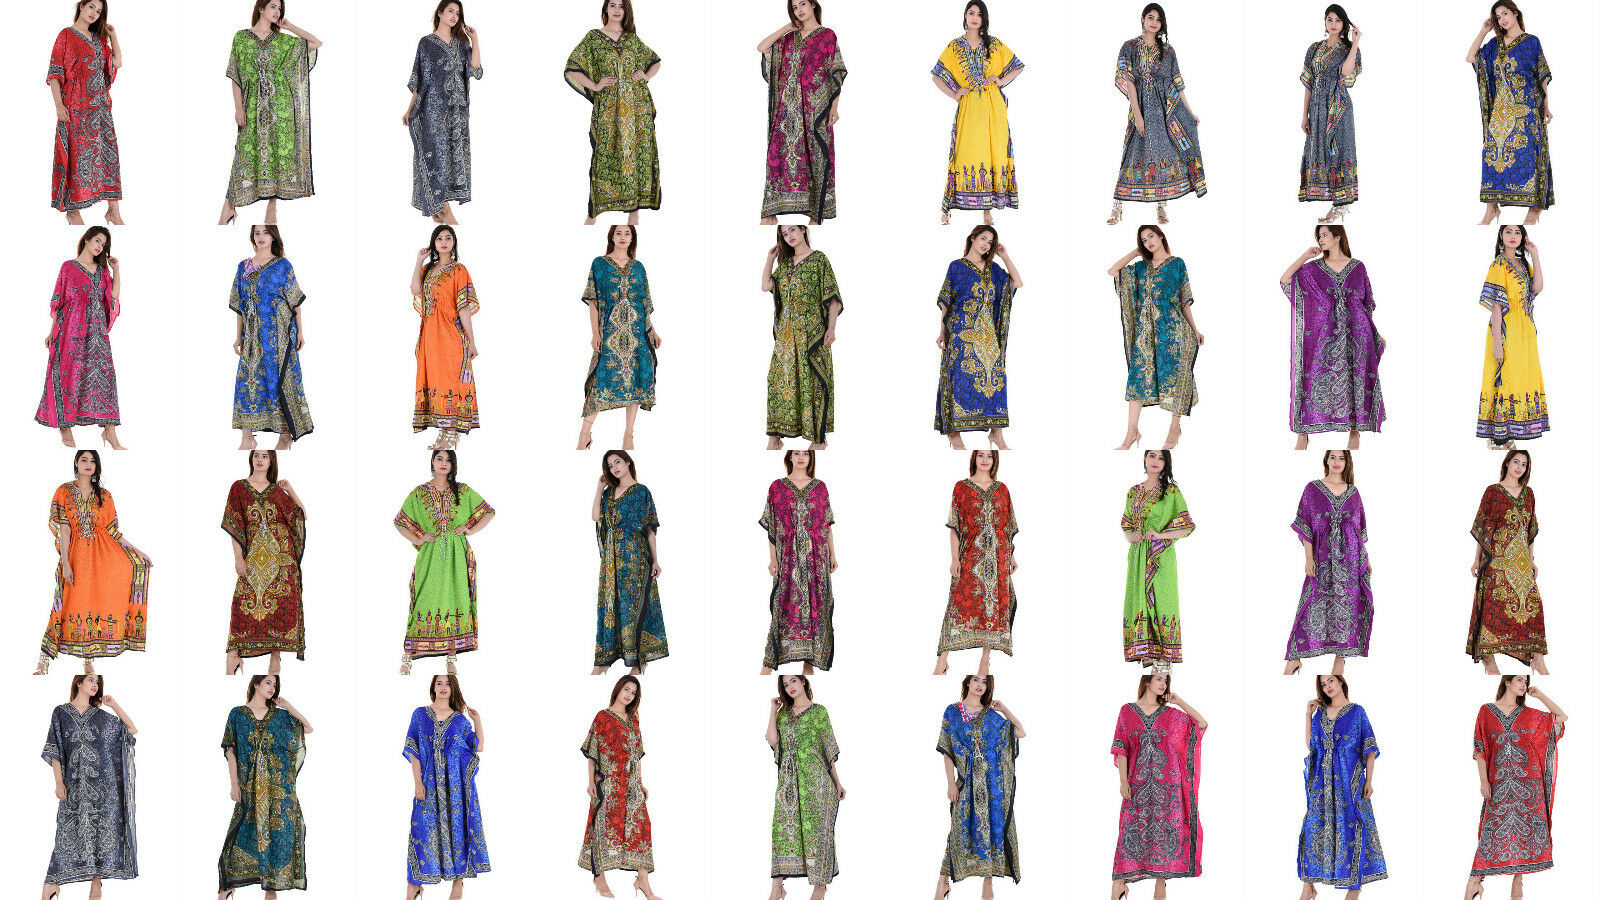 WHOLESALE LOT 100 PC Assorted EVENING-DRESS ETHNIC-LONG-Tunic Boho WOMEN KAFTAN